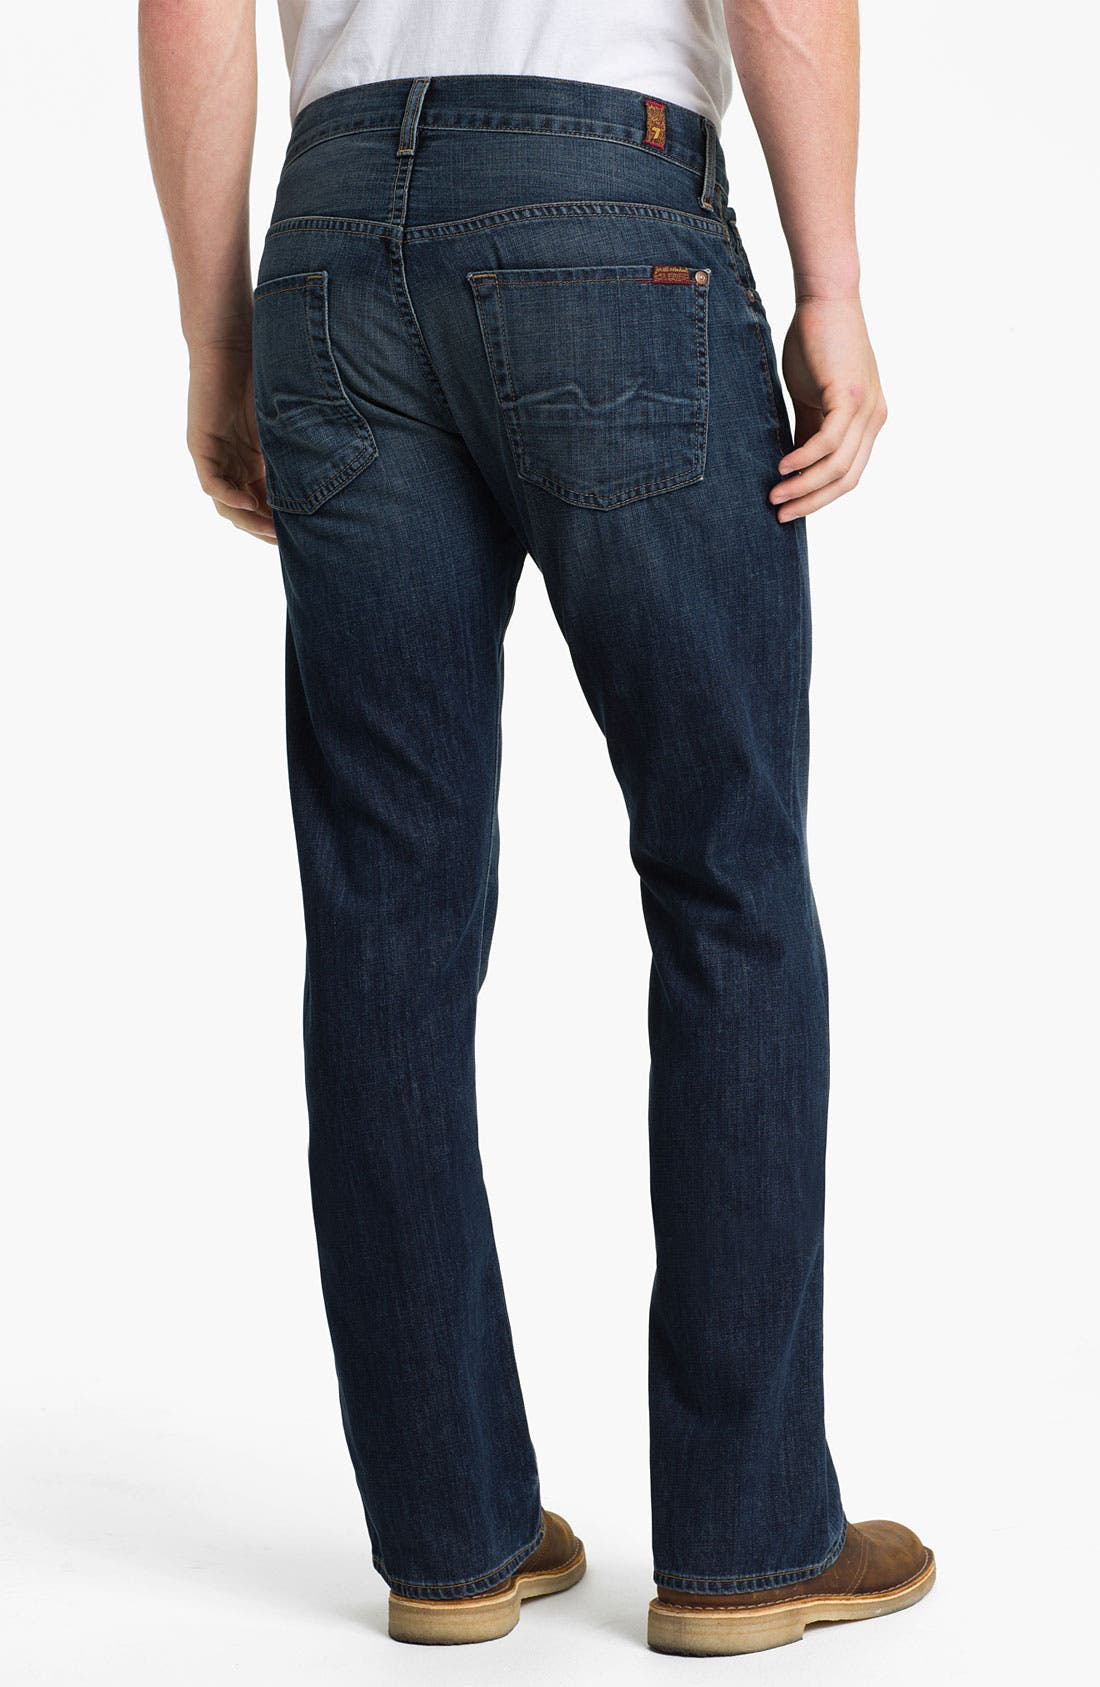 Alternate Image 1 Selected - 7 For All Mankind® 'Brett' Bootcut Jeans (Worn Blue)